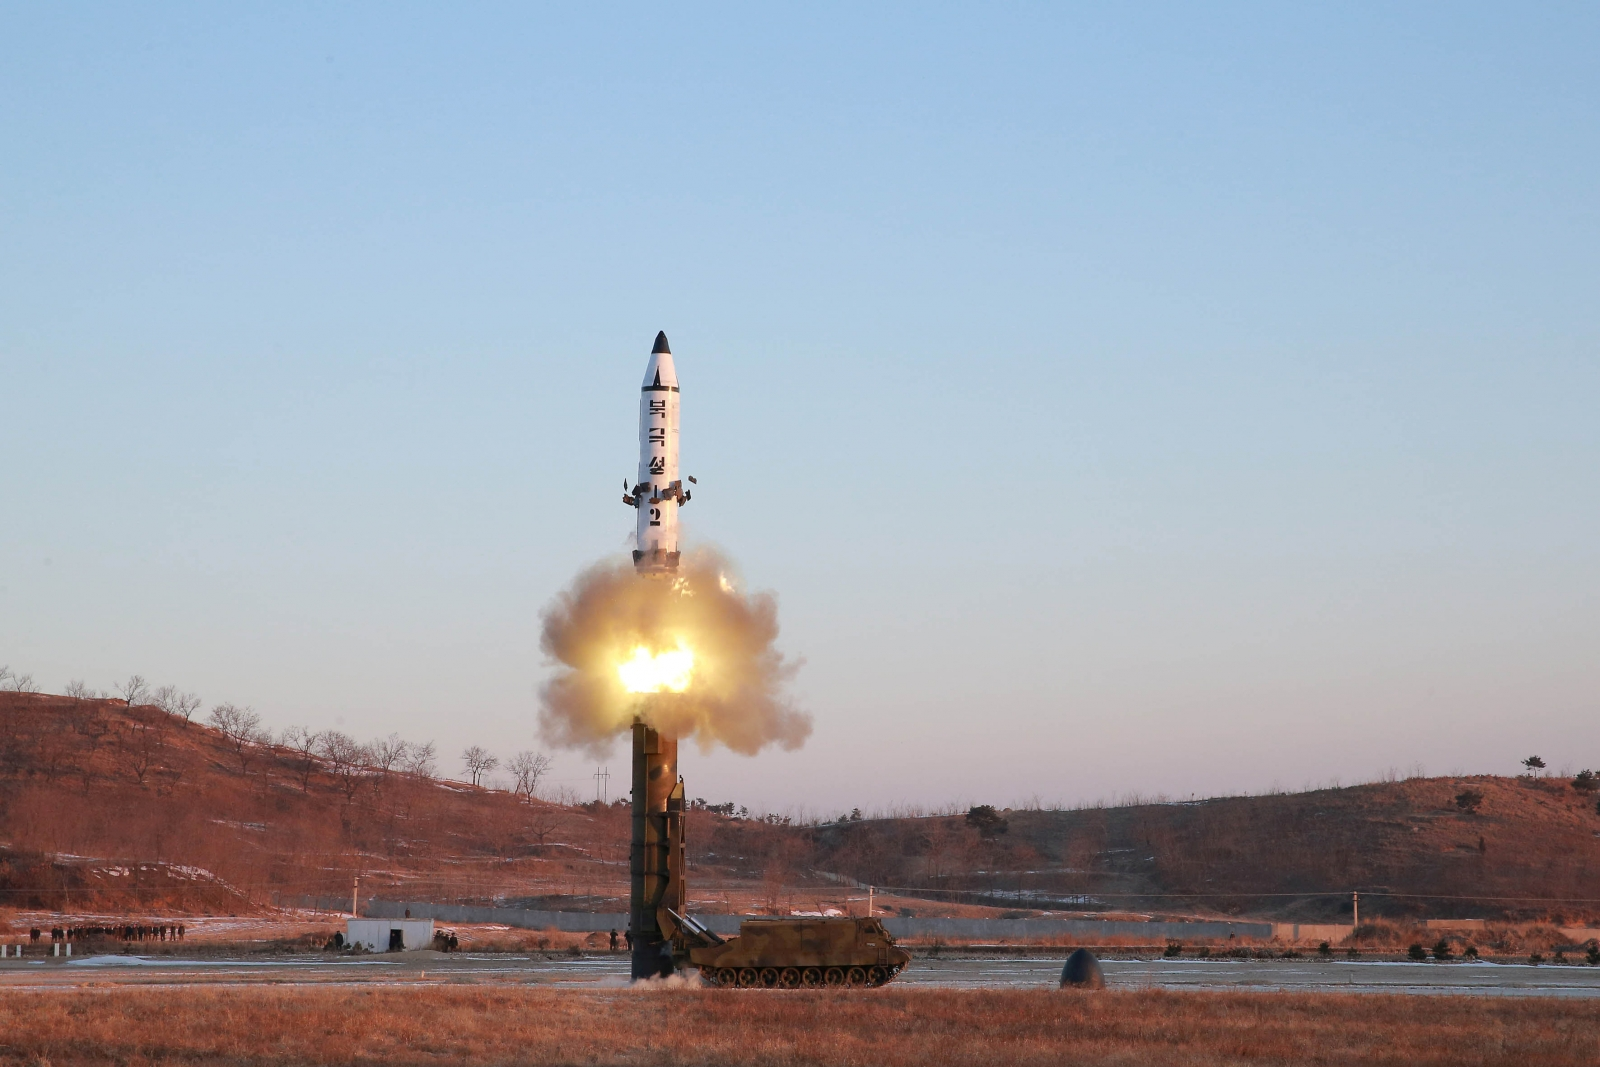 North Korea Test Fires Mid-Range Missile Amid Growing Tensions